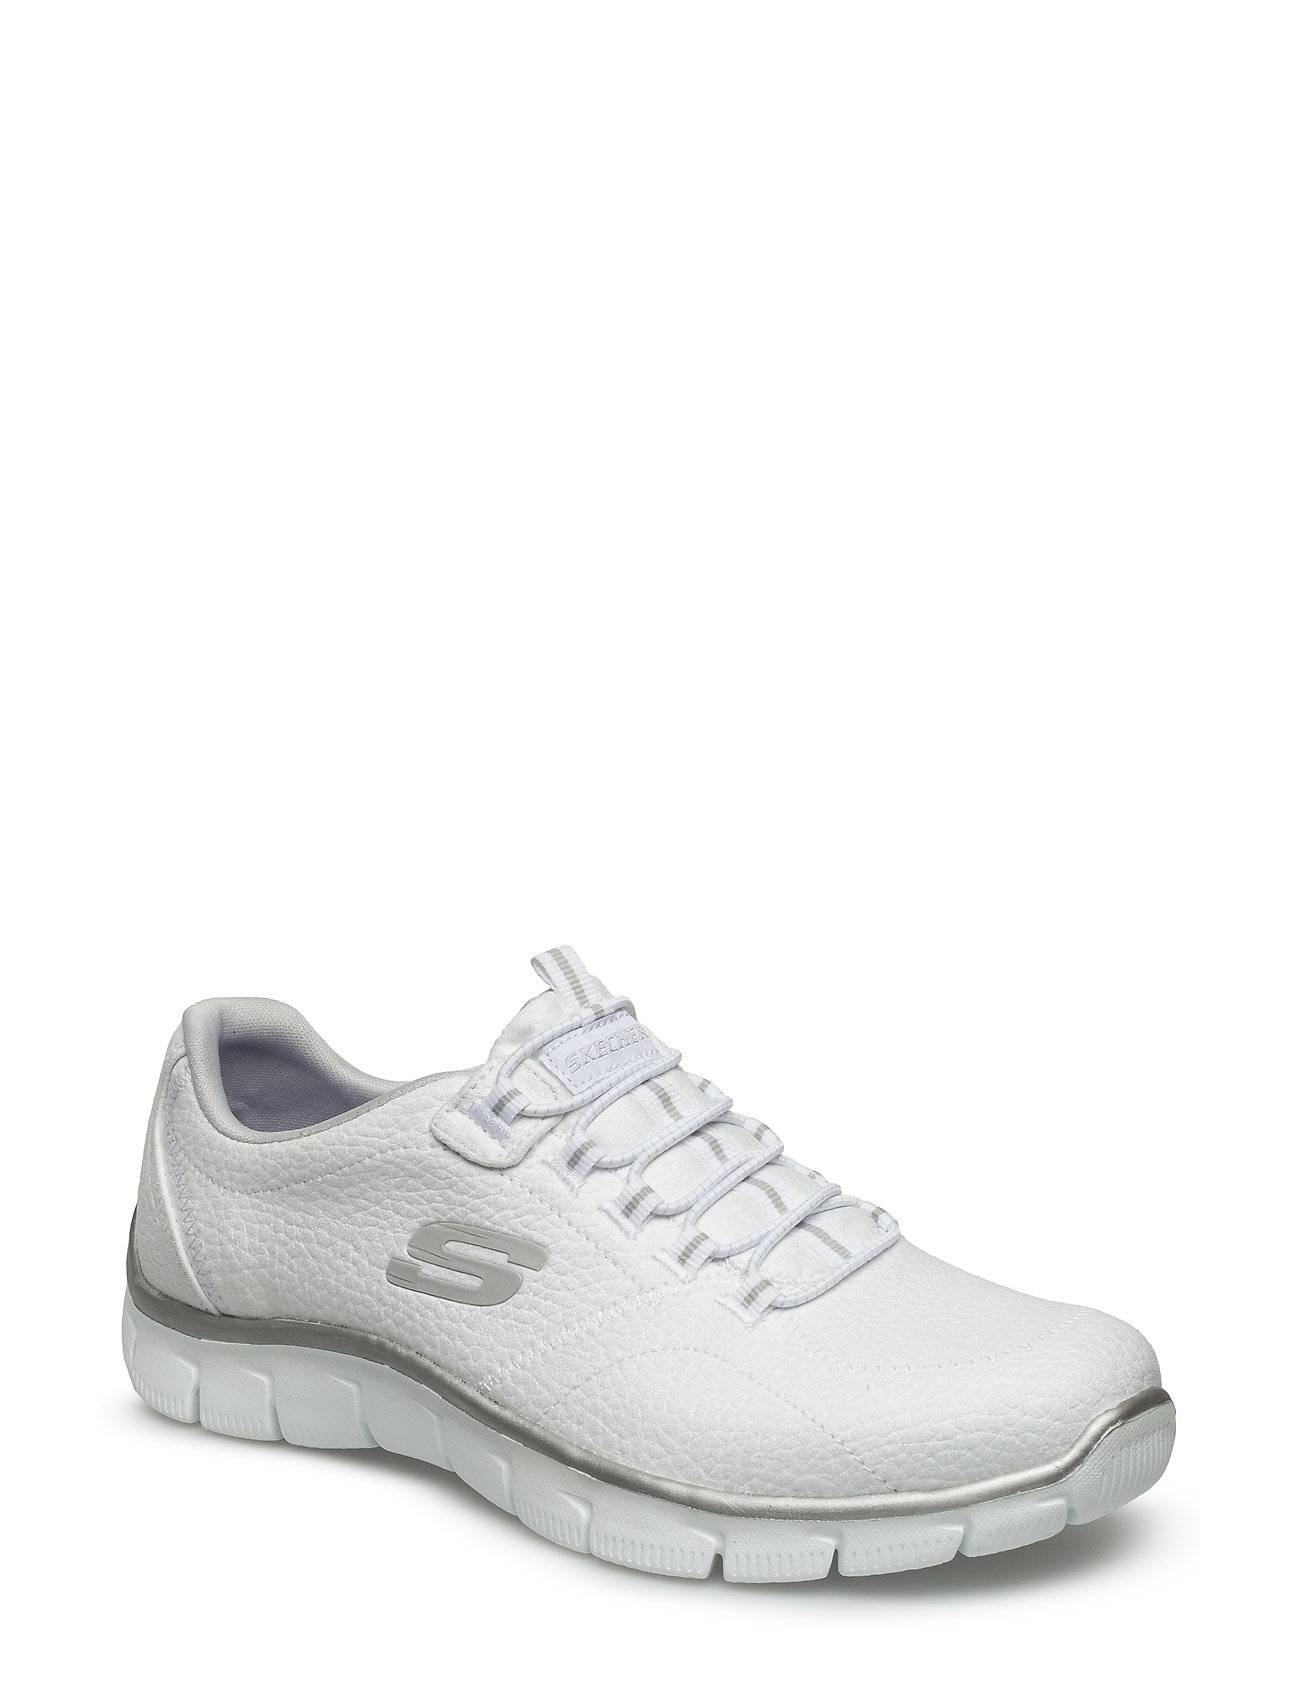 Skechers Empire - Take Charge